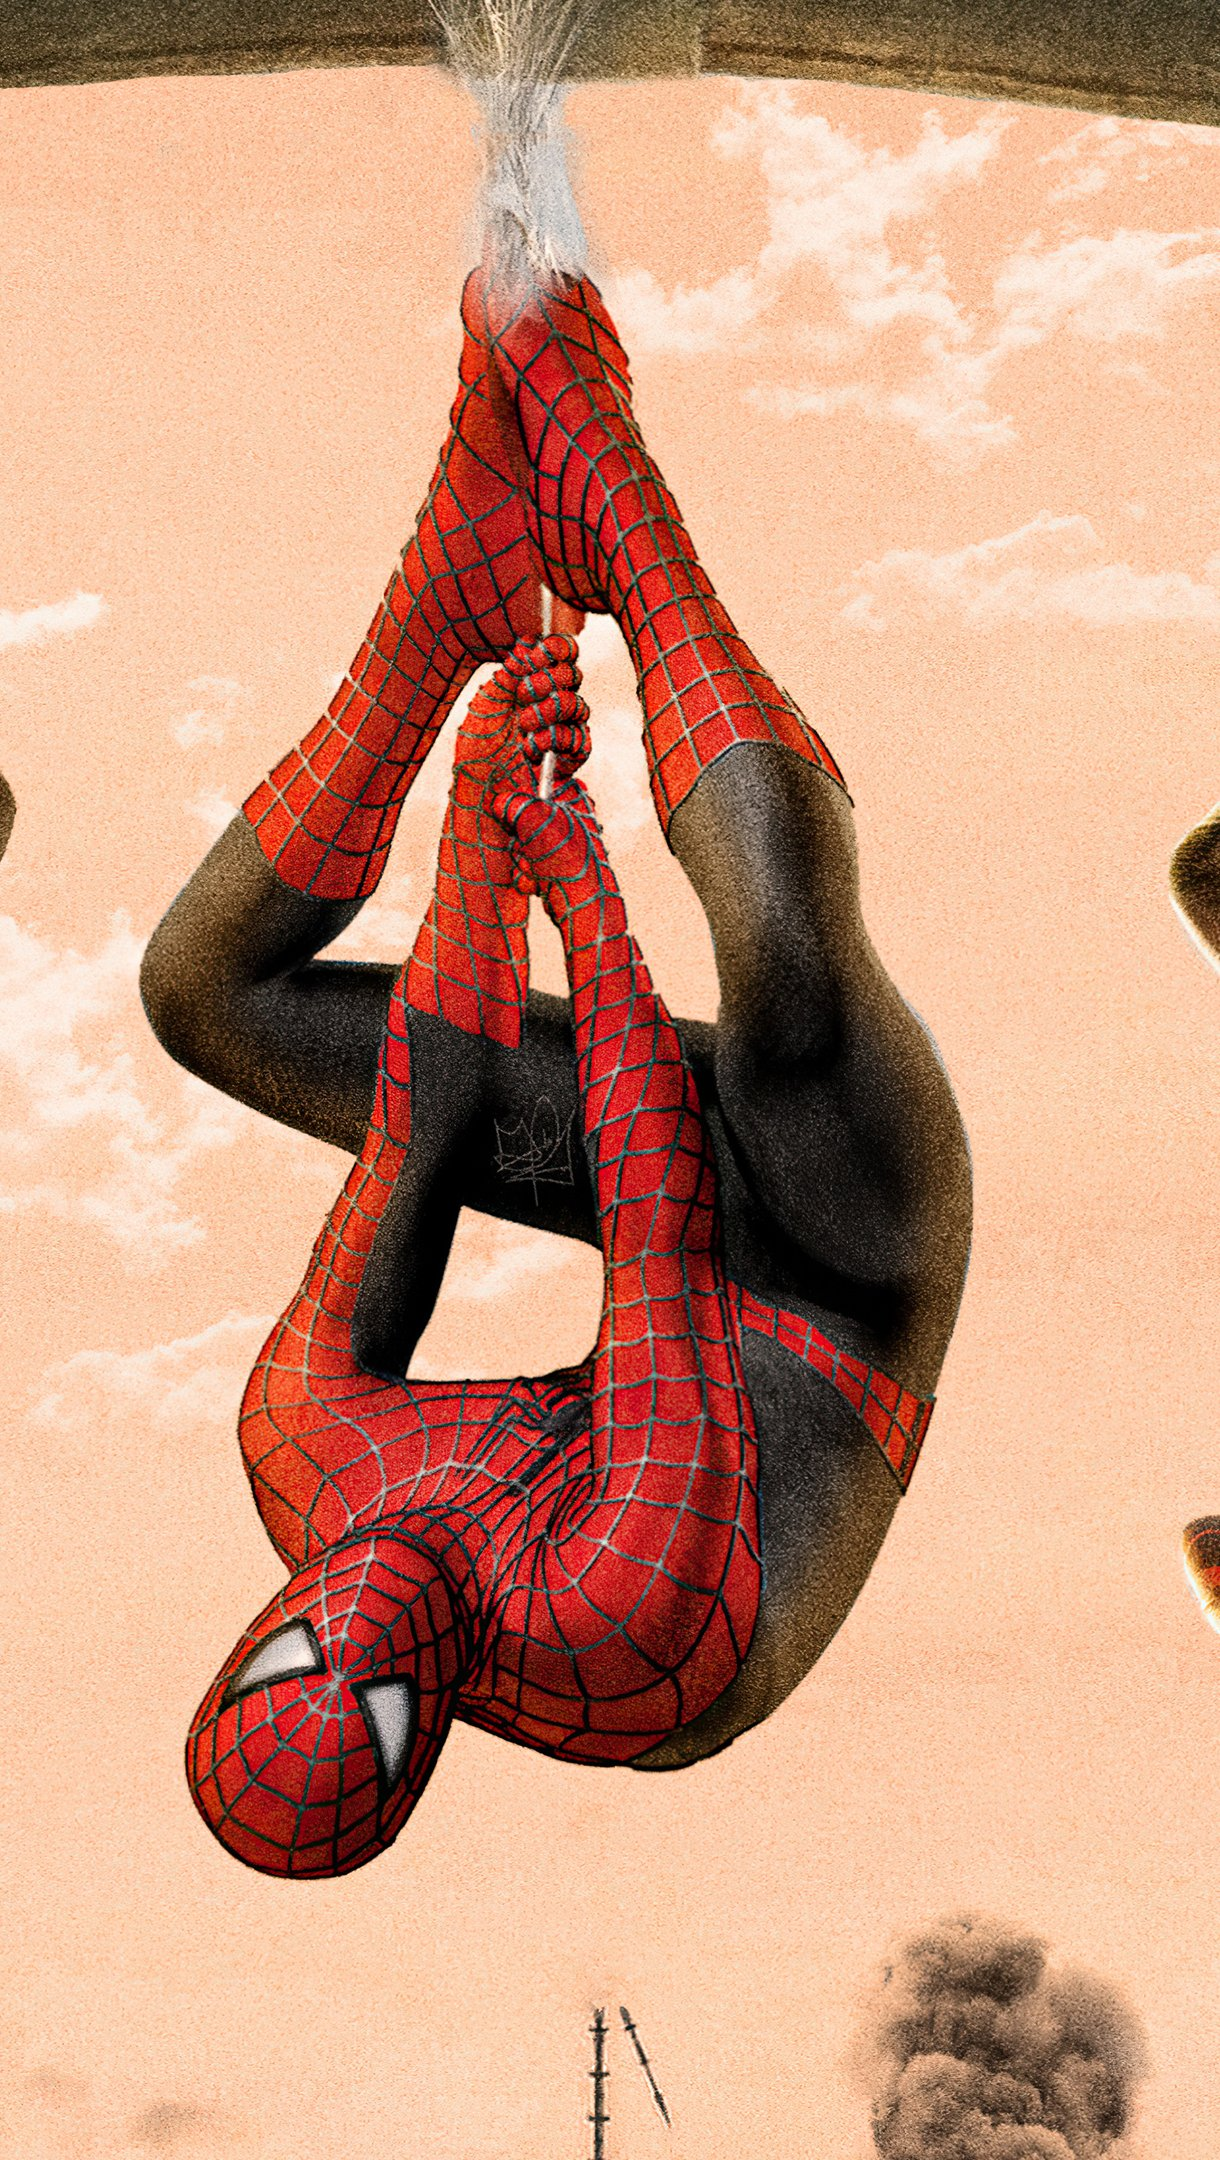 Wallpaper Spiderverse Tobey Maguire Tom Holland Andrew Garfield Vertical